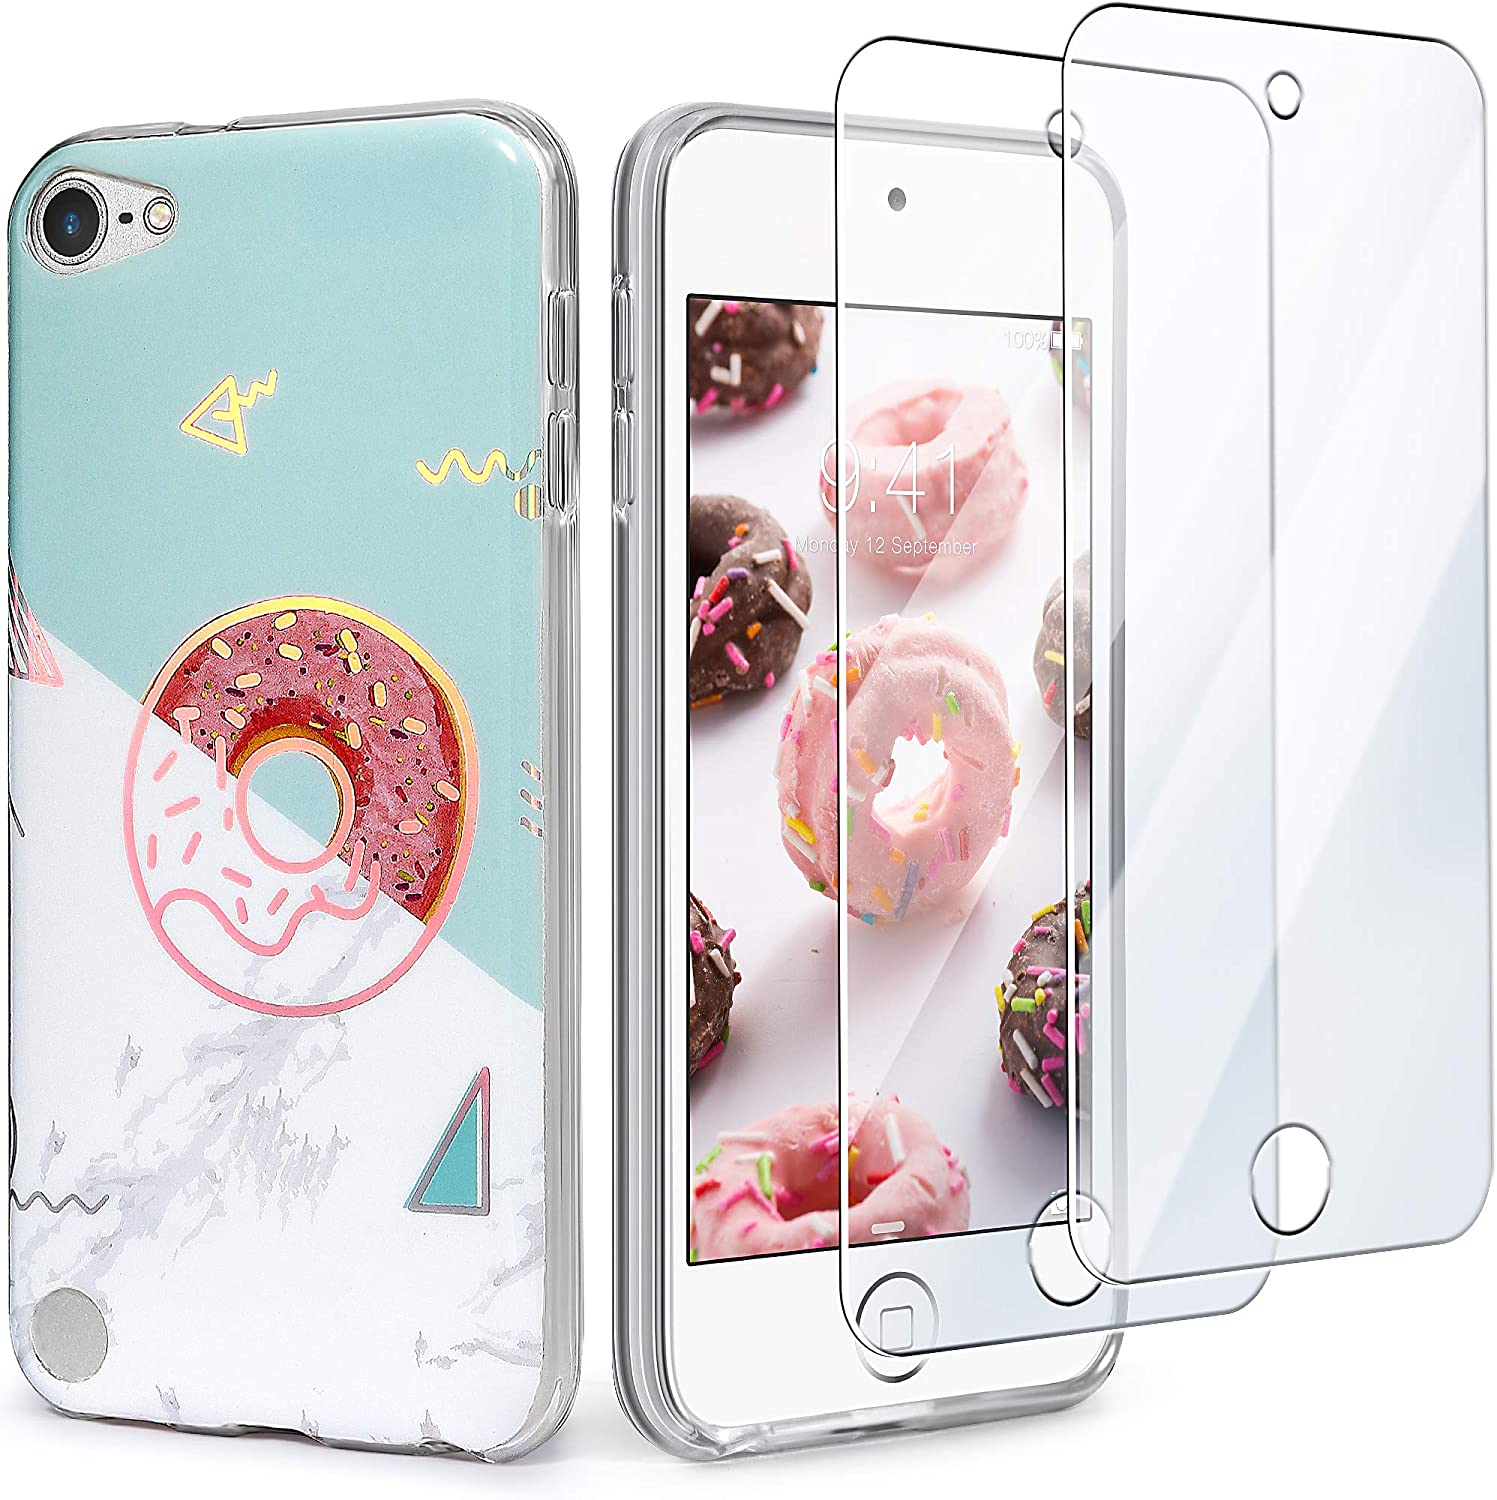 IDWELL iPod Touch 7 Touch 6 Touch 5 Case with 2 Screen Protectors,Slim FIT Anti-Scratch Flexible Soft TPU Bumper Hybrid Shockproof Protective Case for Apple iPod Touch 5/6/7th Gen ,Donut